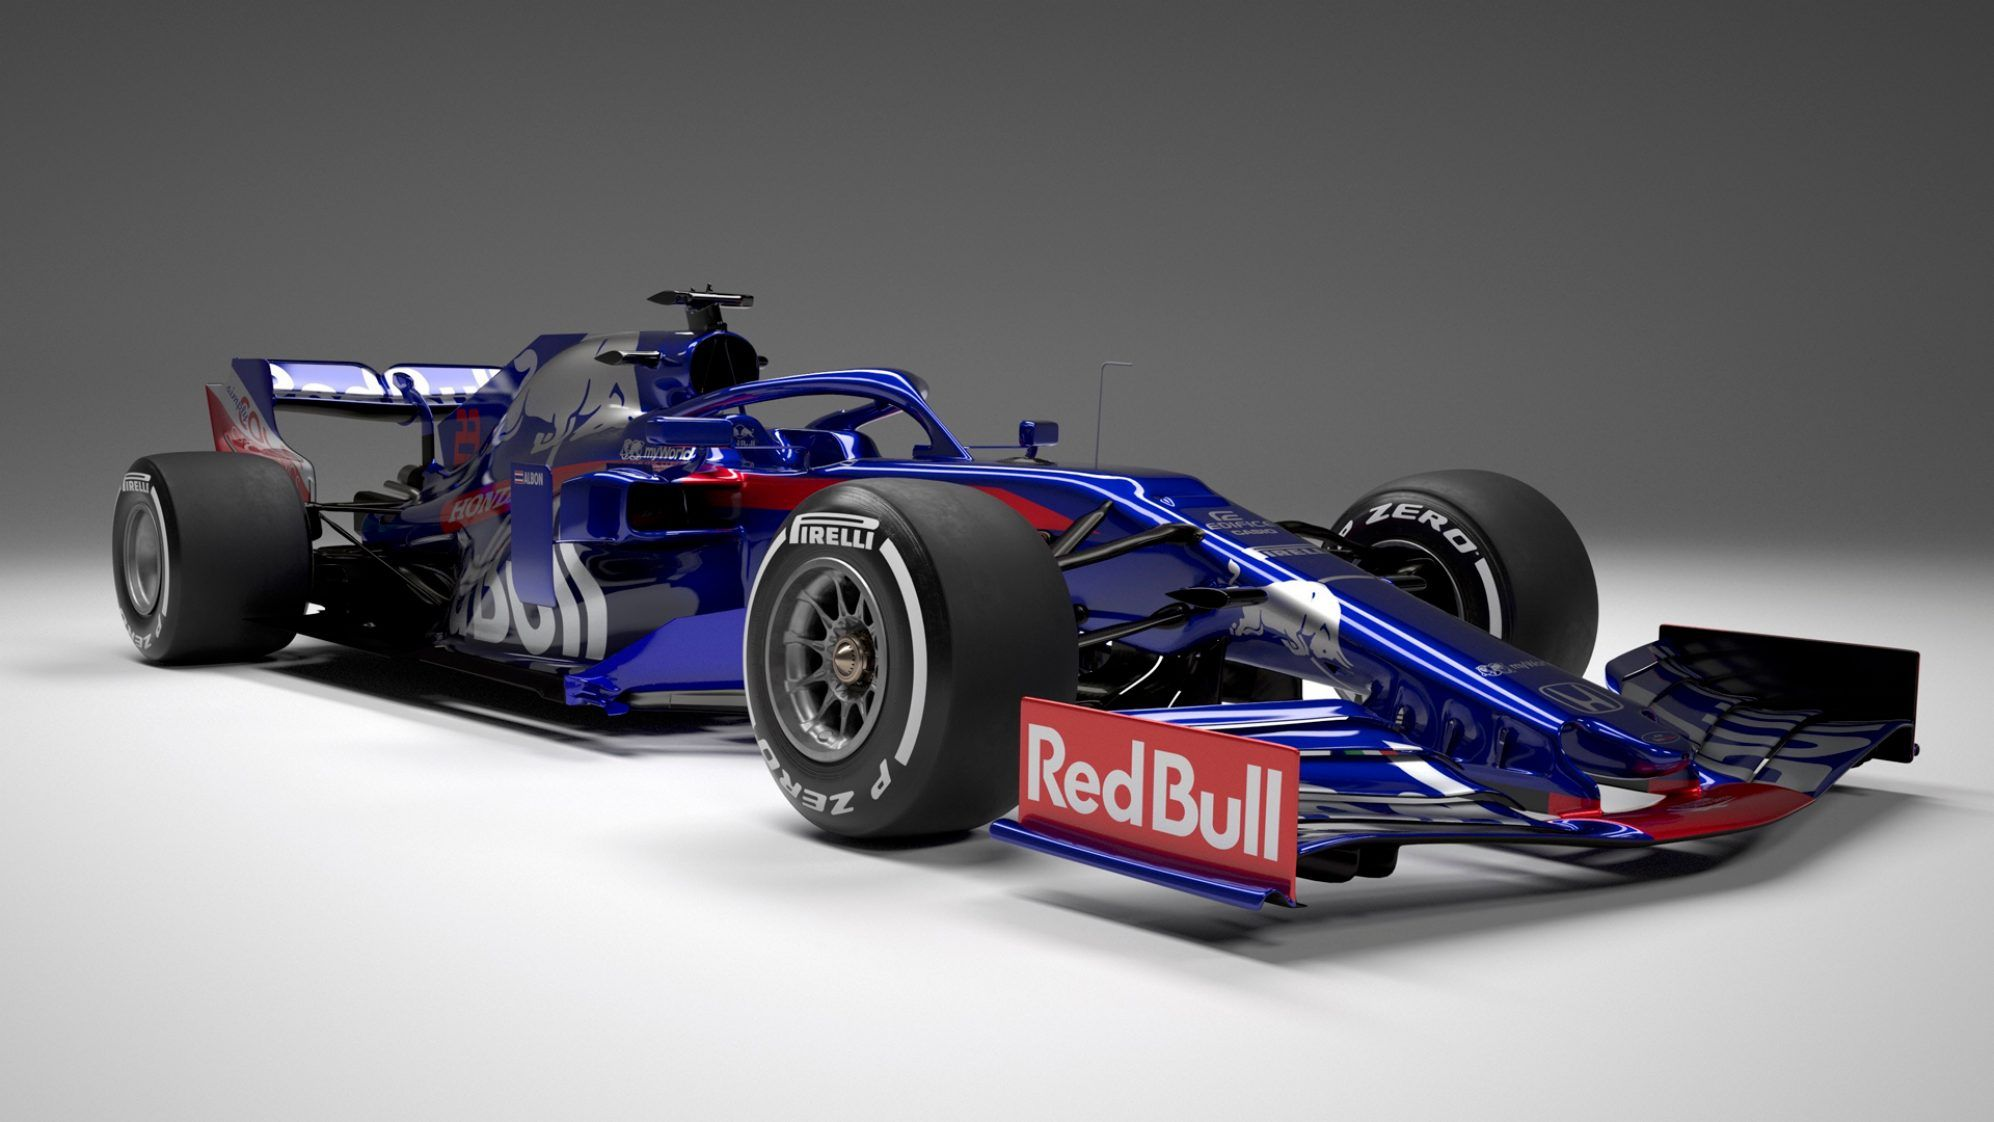 Toro Rosso Str14 All The Angles Of The 2019 F1 Car Formula 1 Formula 1 Car Toro Rosso Formula One